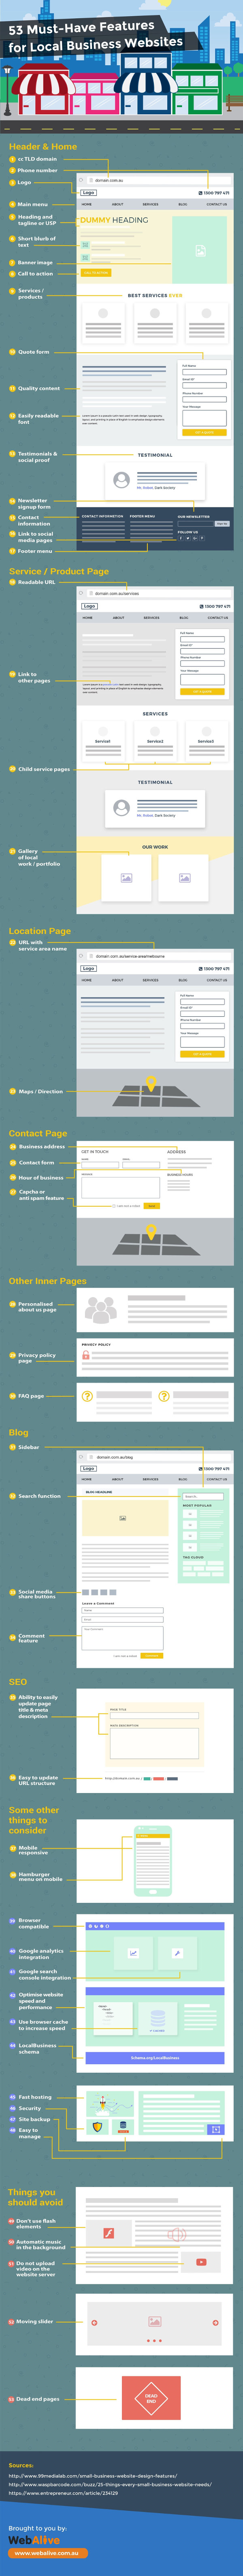 53 Must-Have Features of Local Business Websites [Infographic]